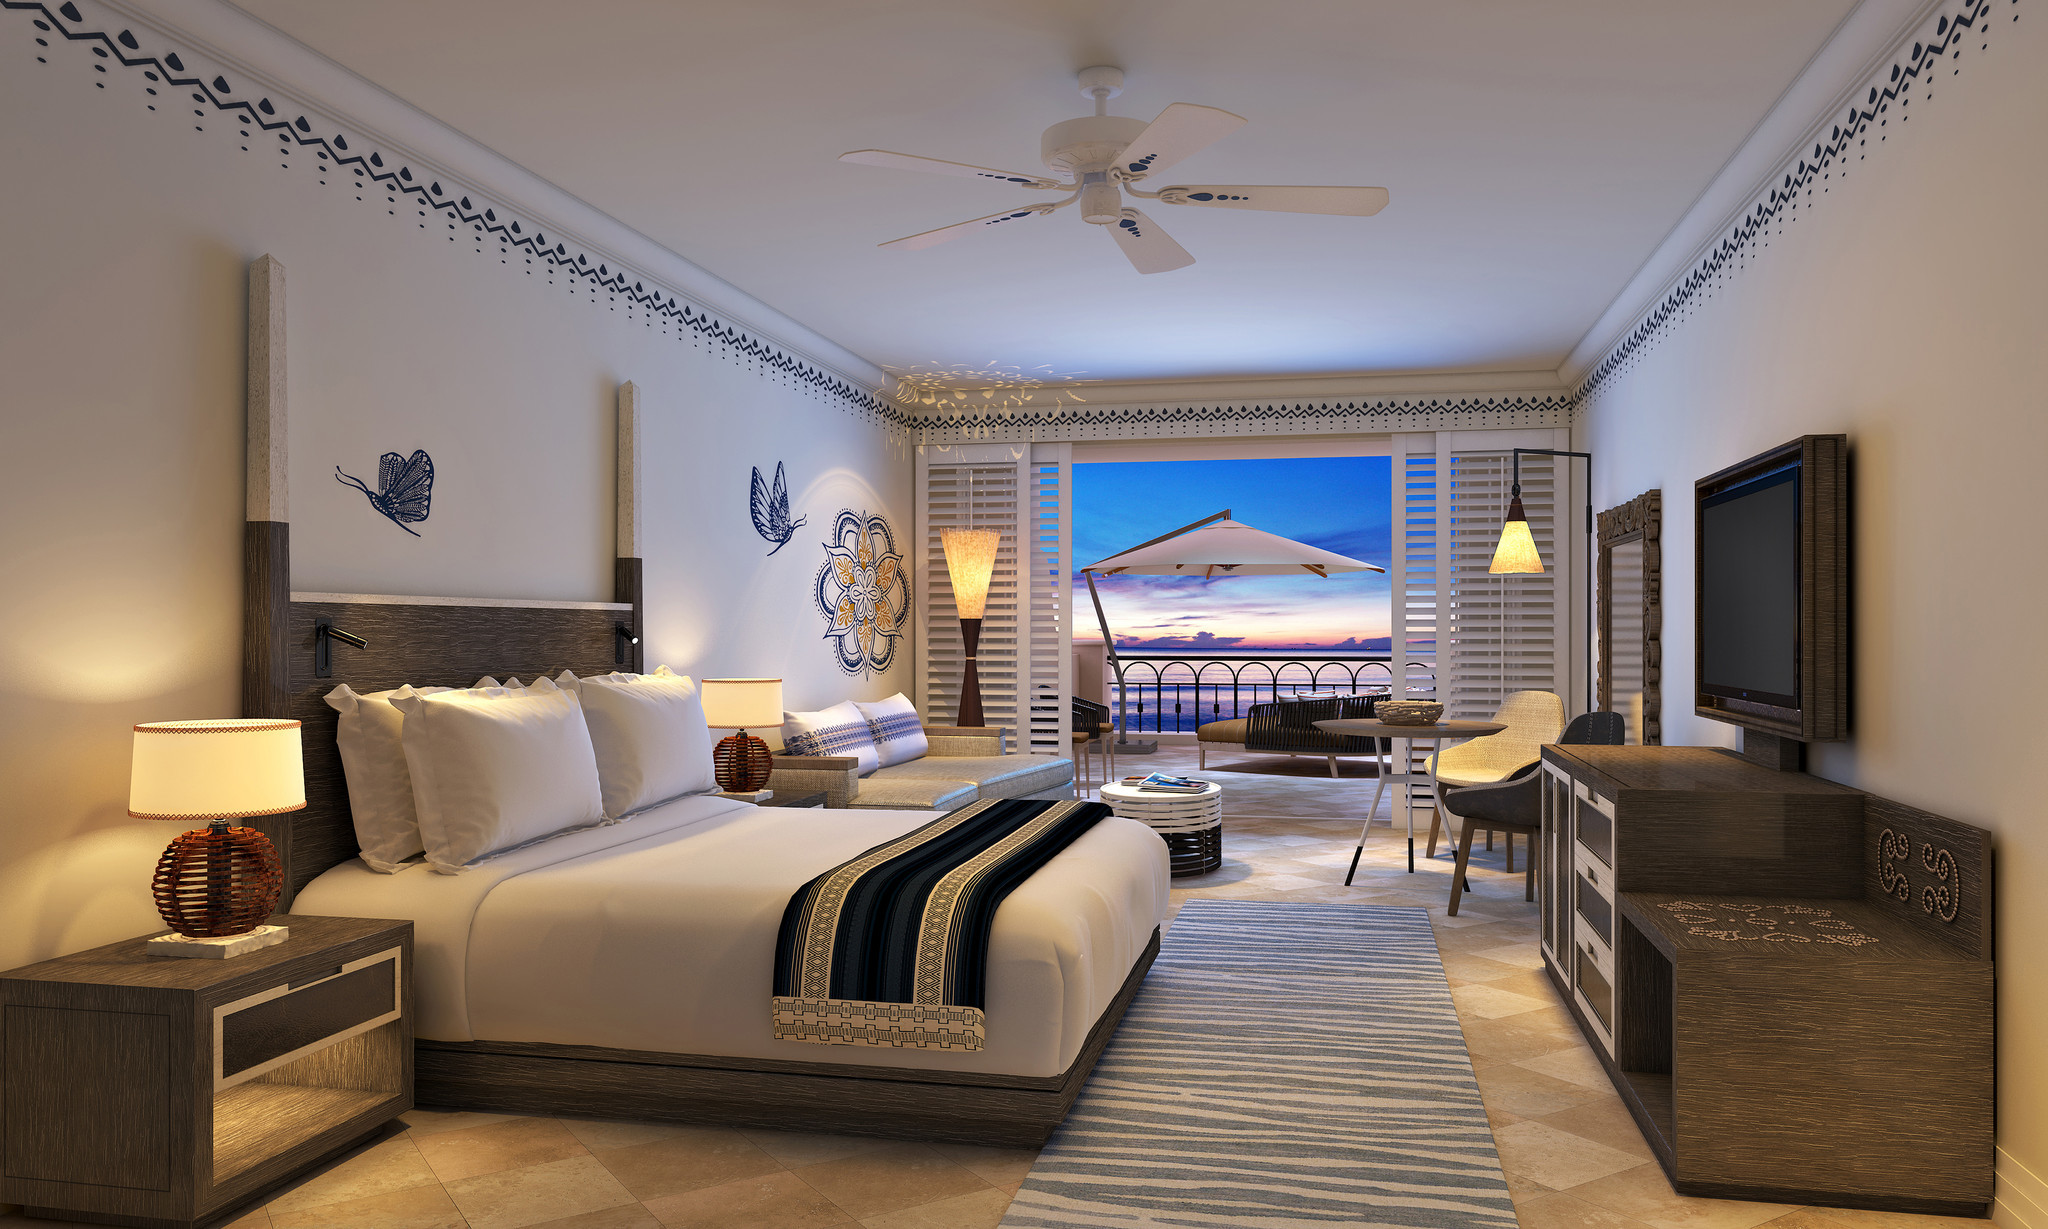 Hilton Los Cabos Resort Reopens 10 Months After Hurricane